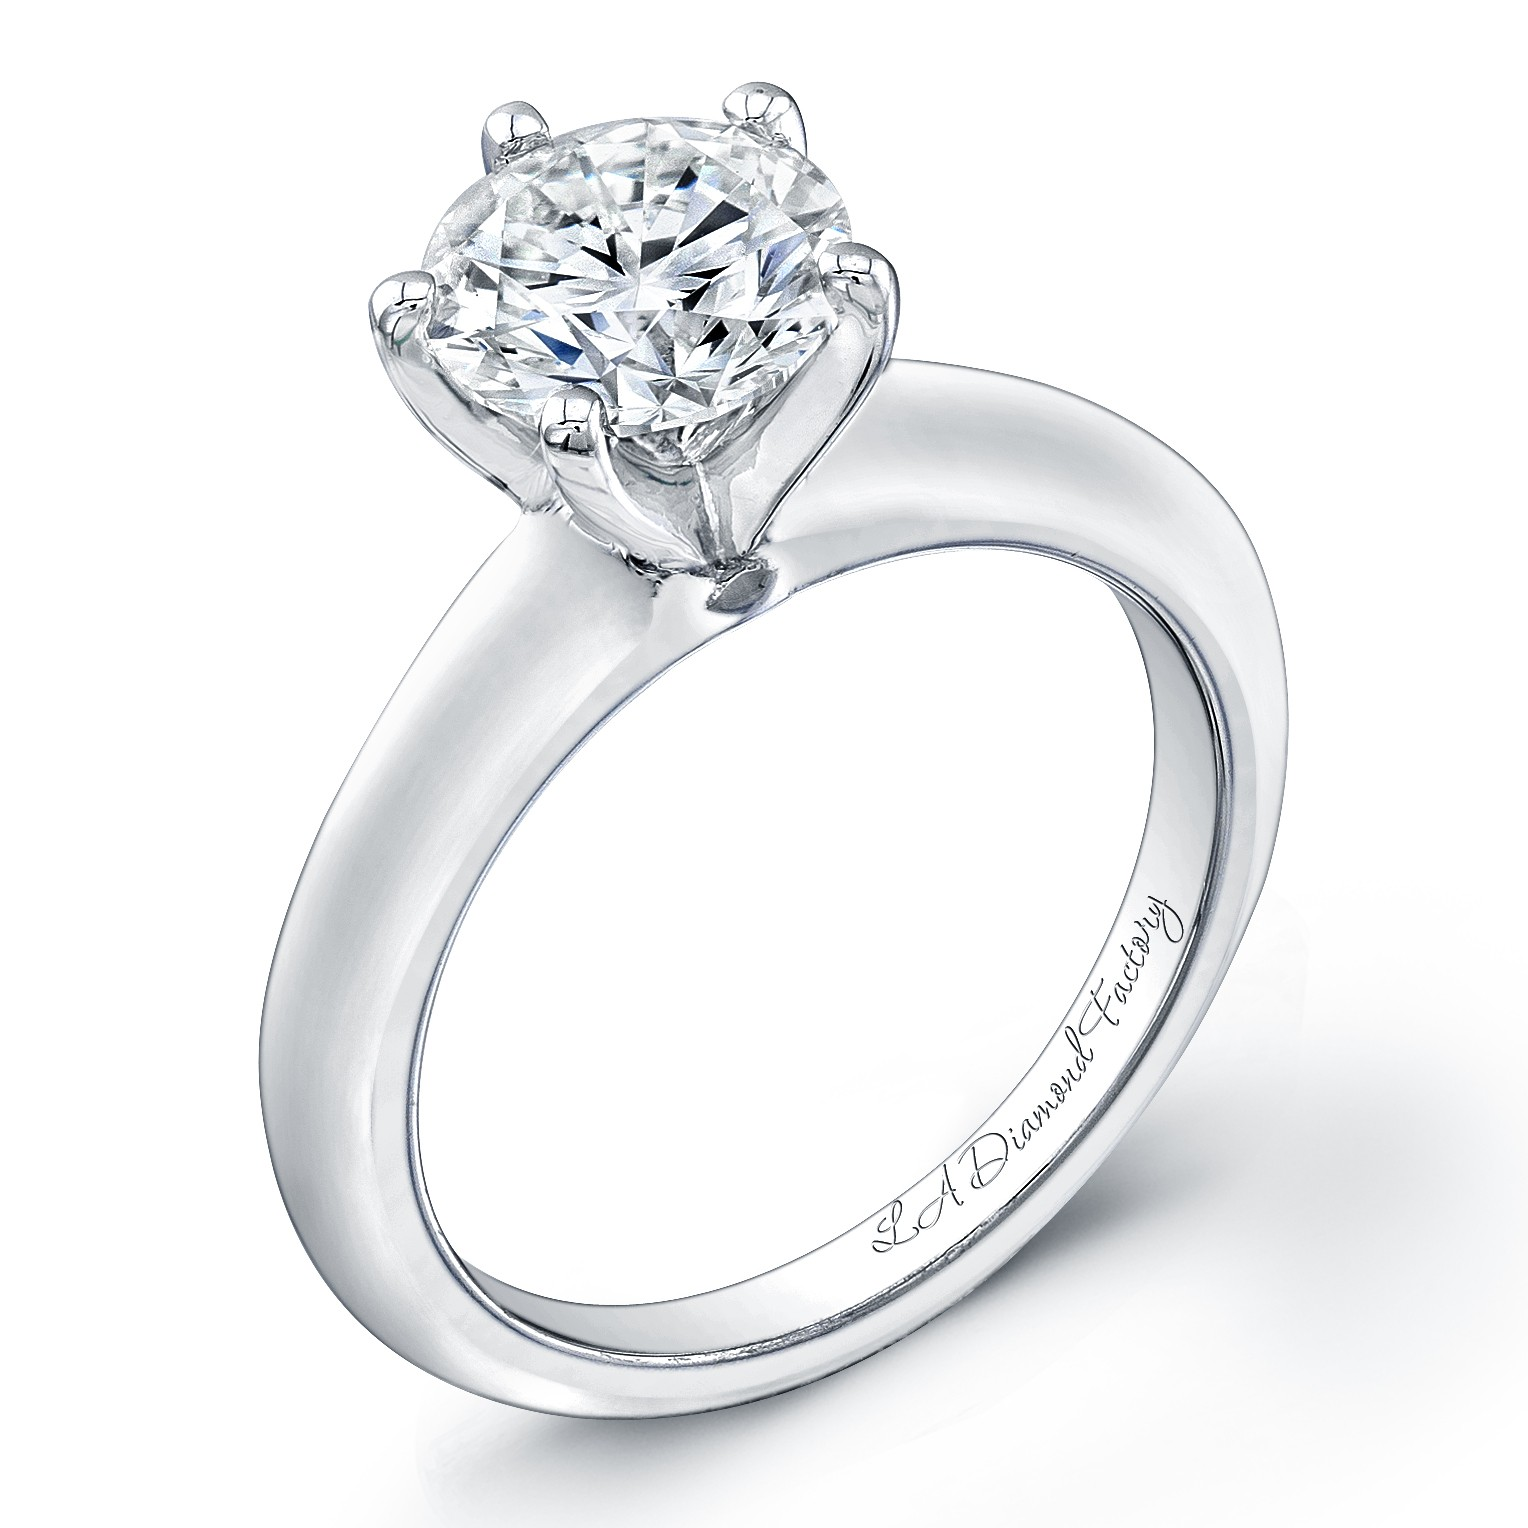 Classic 6-Prong Solitaire Engagement Ring